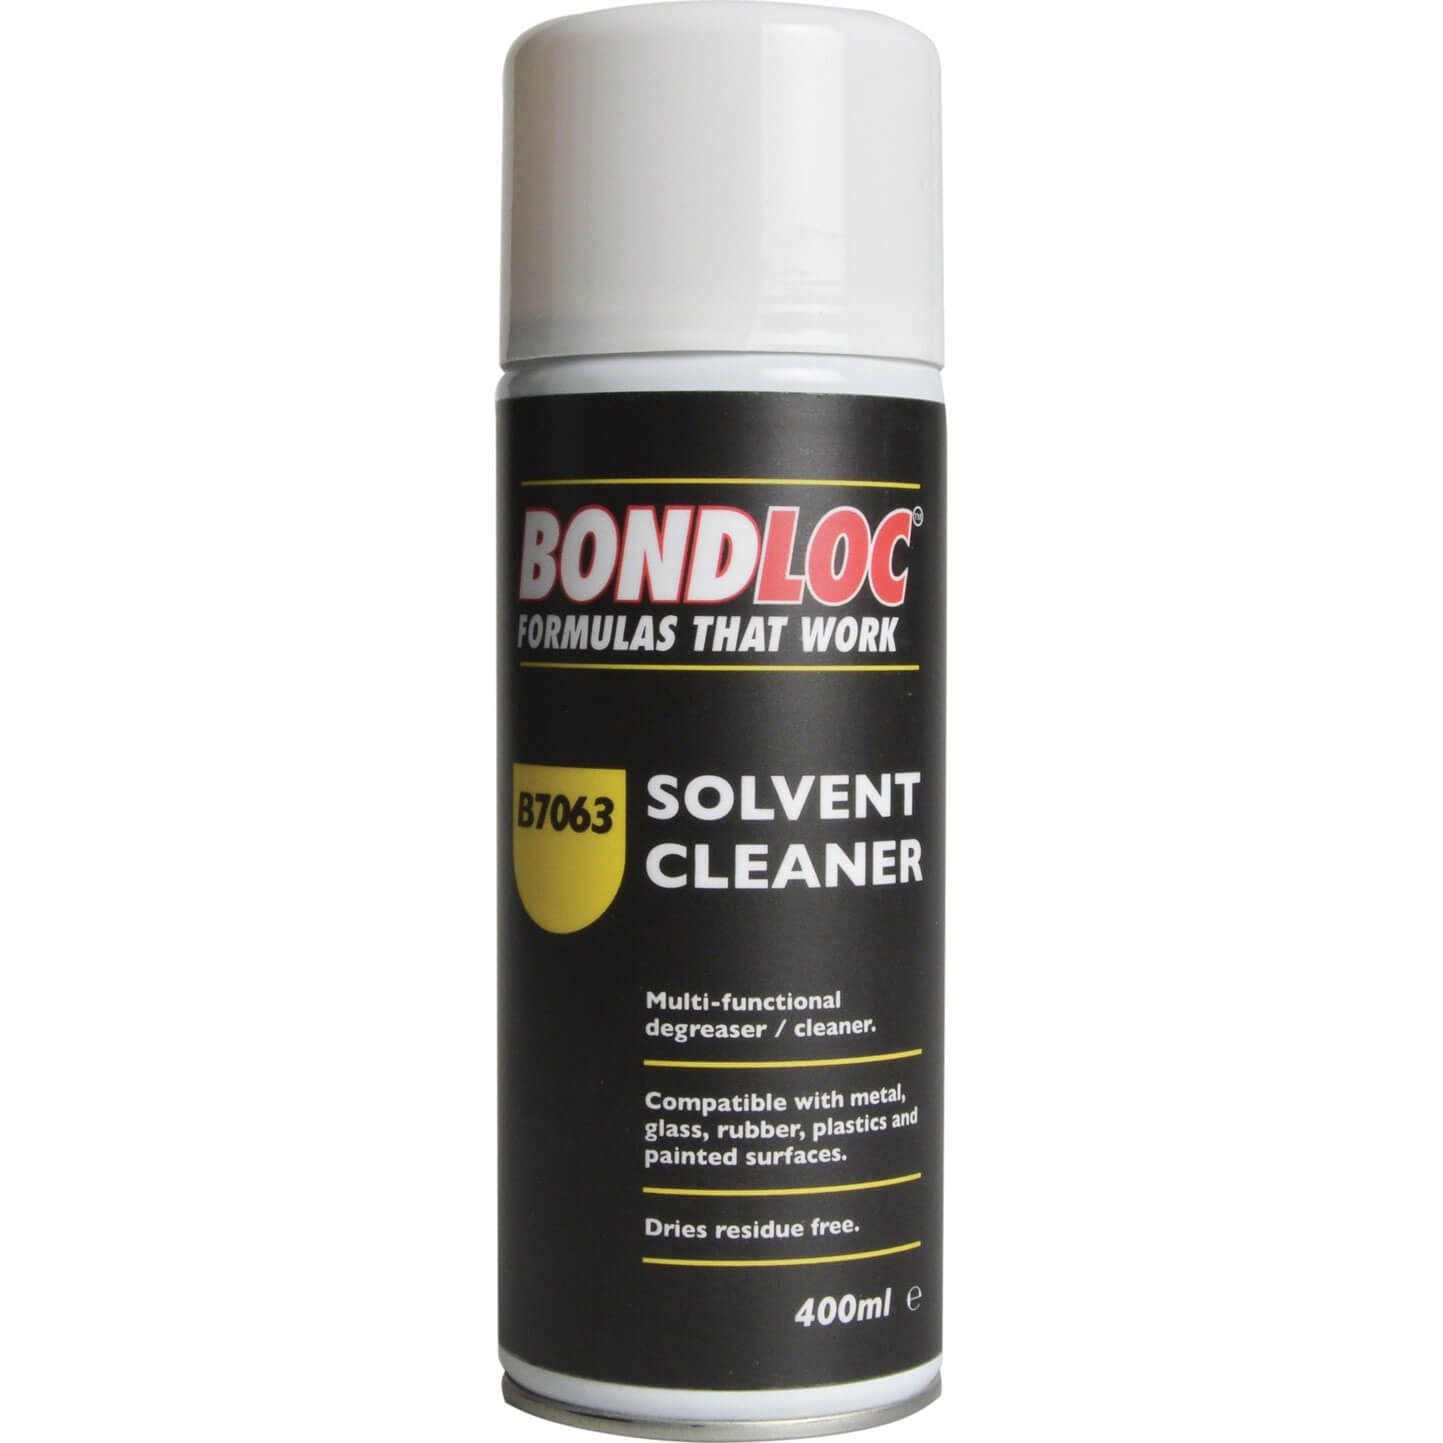 Image of Bondloc B7063 Solvent Cleaning & Degreasing Compound 400ml